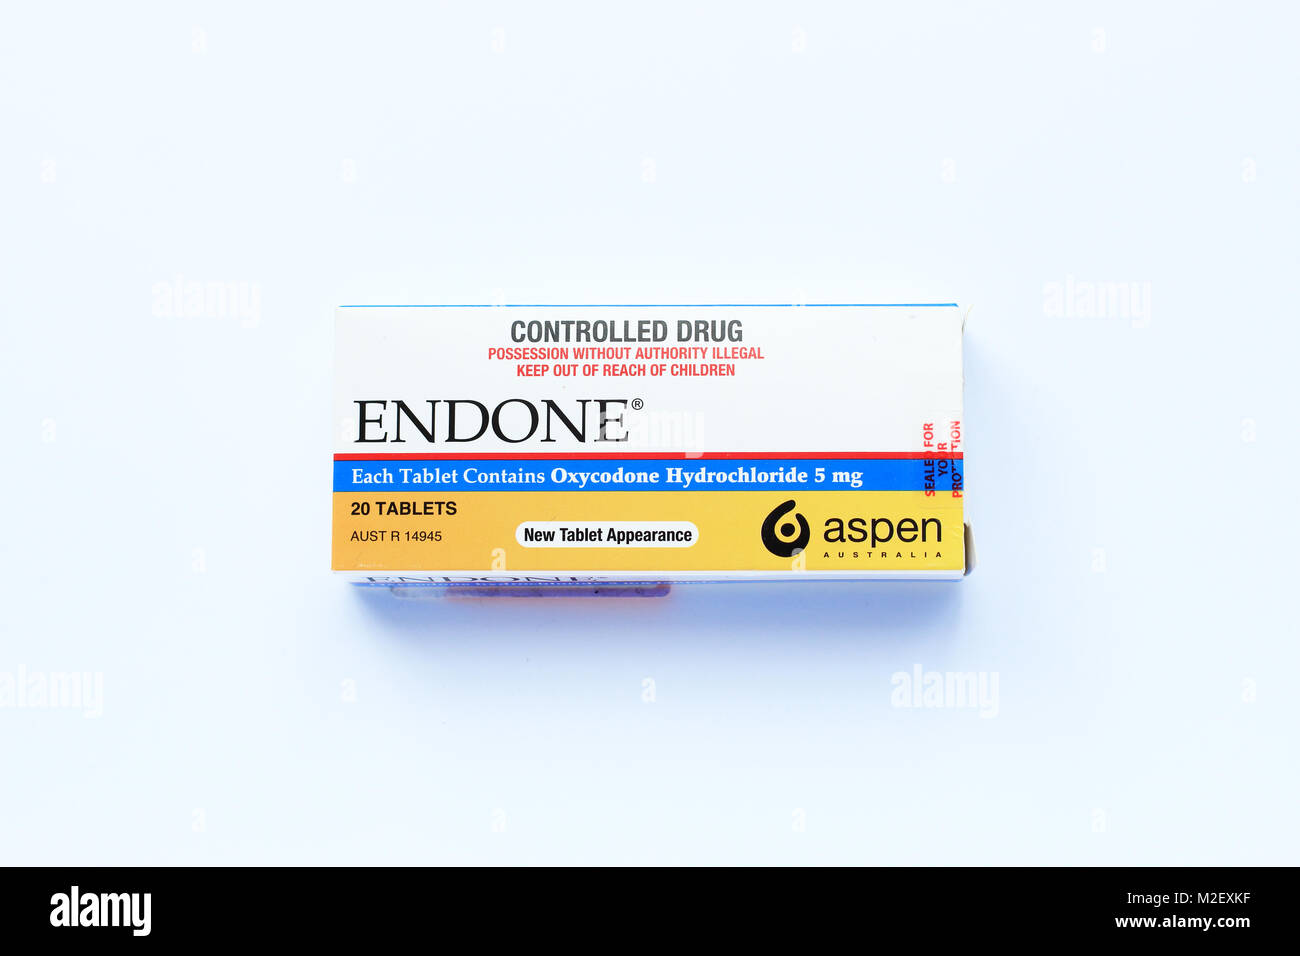 Endone painkiller Prescription - fort isolé contre la douleur Photo Stock